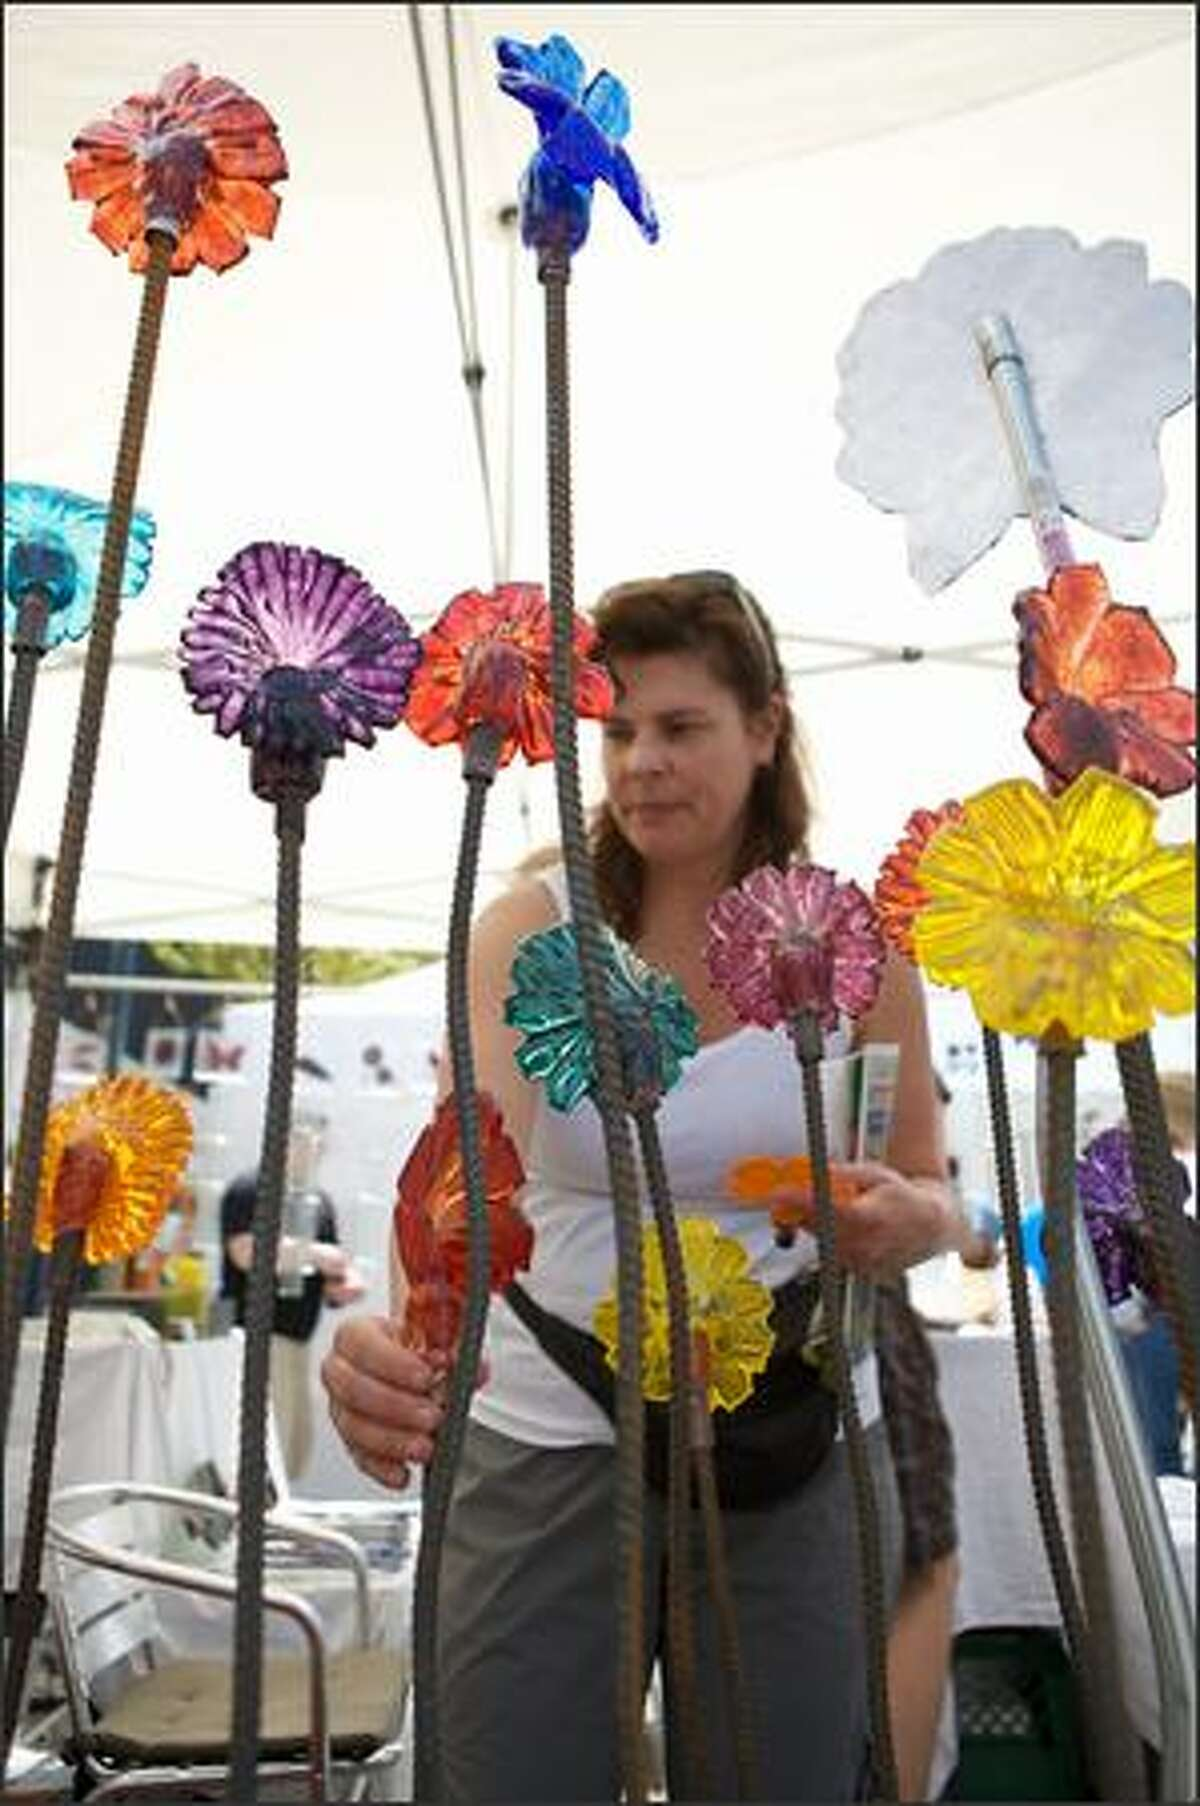 Sharon Pohlman of Seattle looks into buying a lawn ornament for her mom.